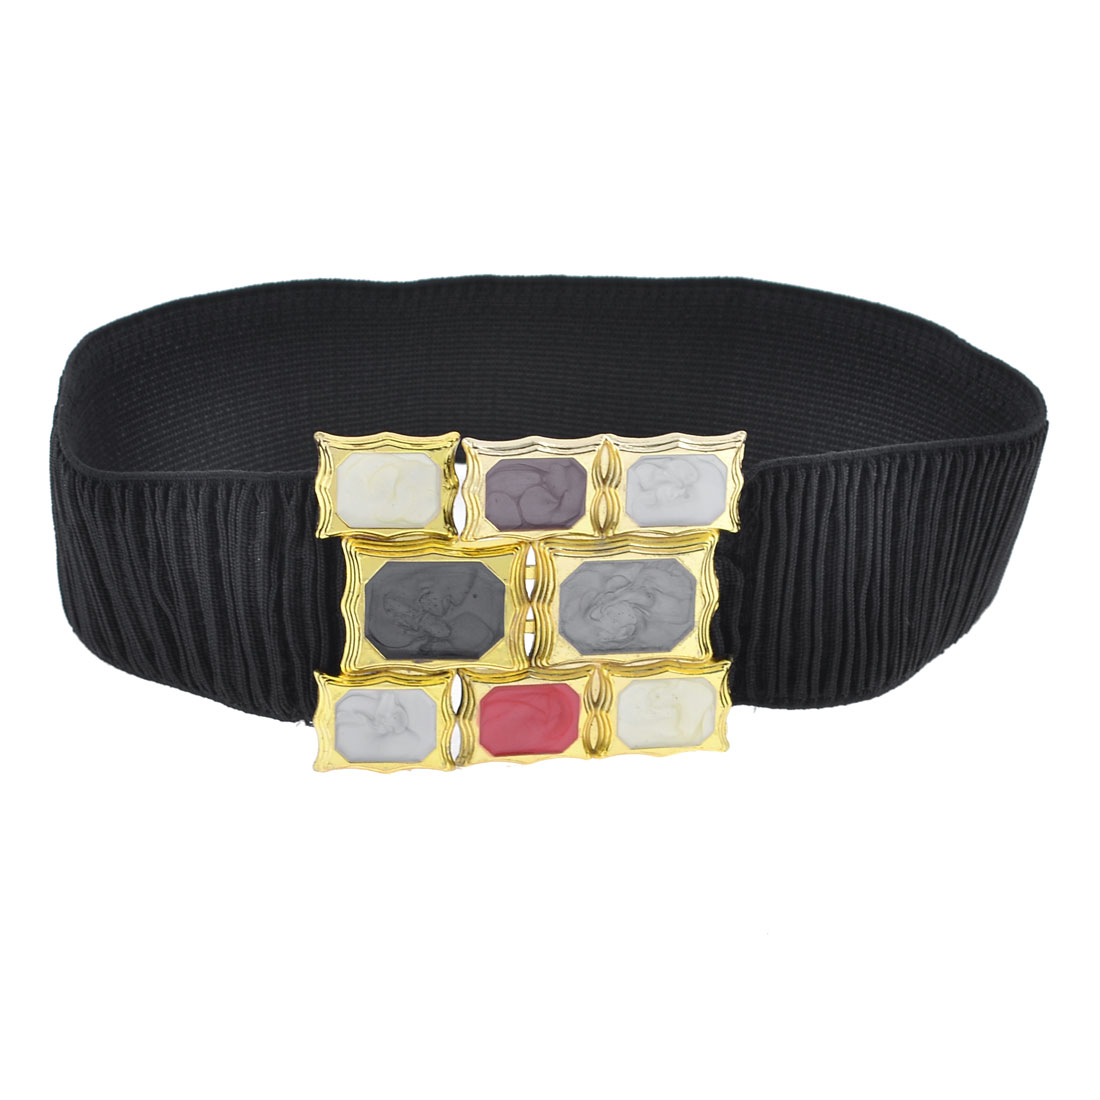 Black Cotton Blend Elastic Fabric Gem Pattern Buckle Belt for Girls